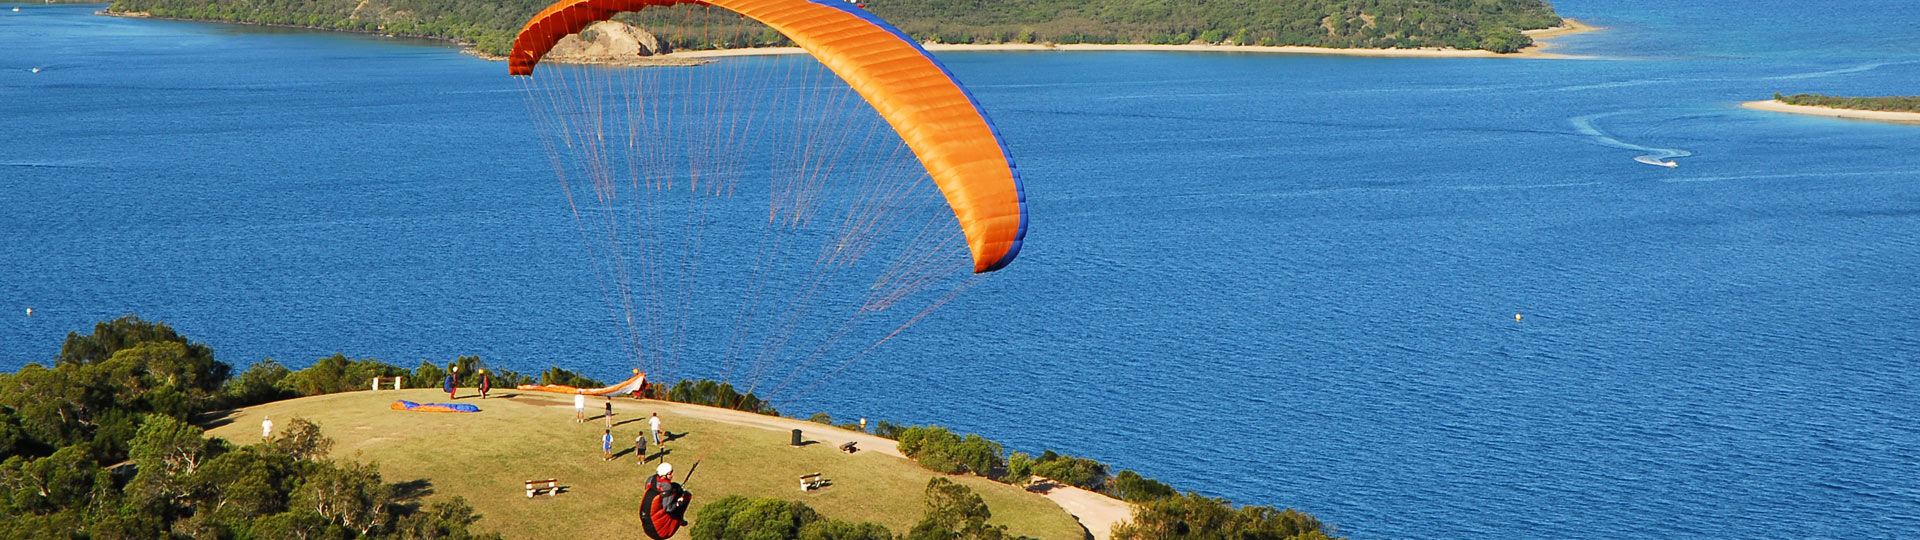 Parachuting and paragliding